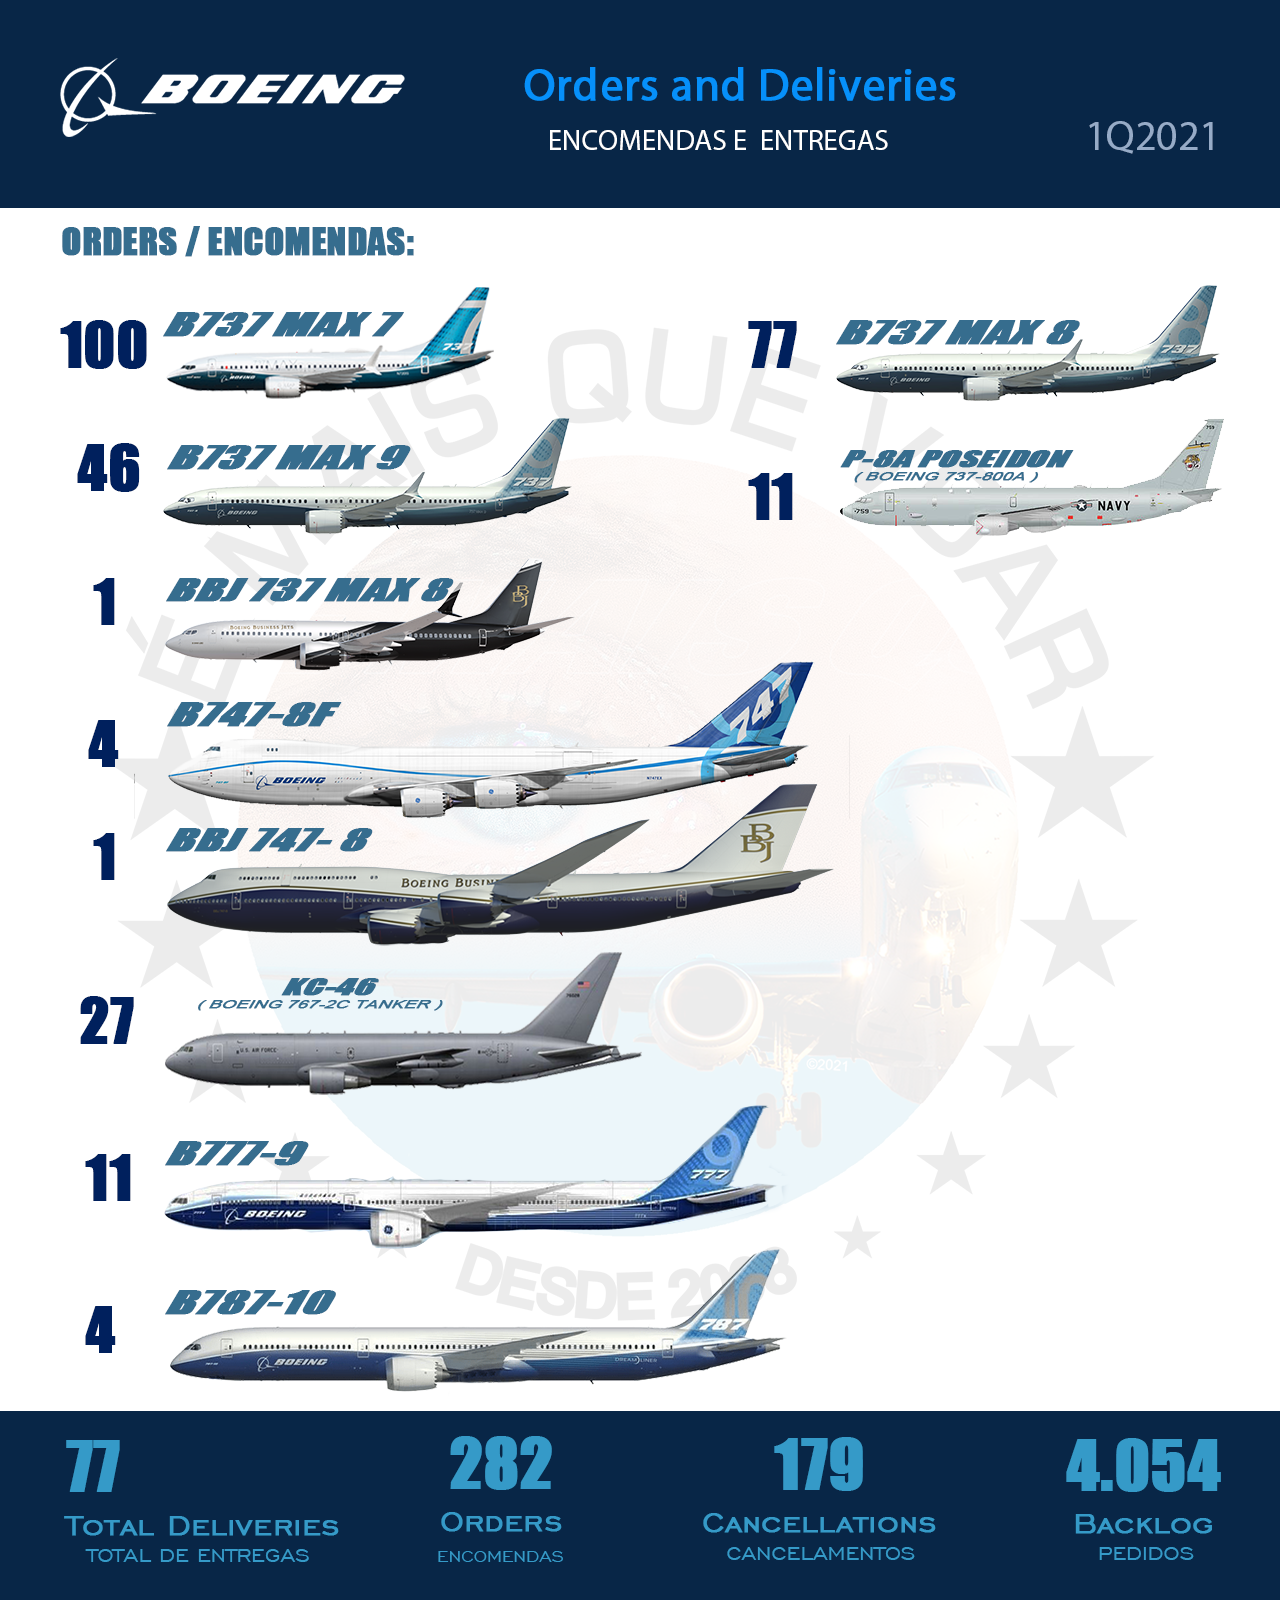 BOEING: TOTAL DELIVERIES AND ORDERS 1Q2021   MORE THAN FLY